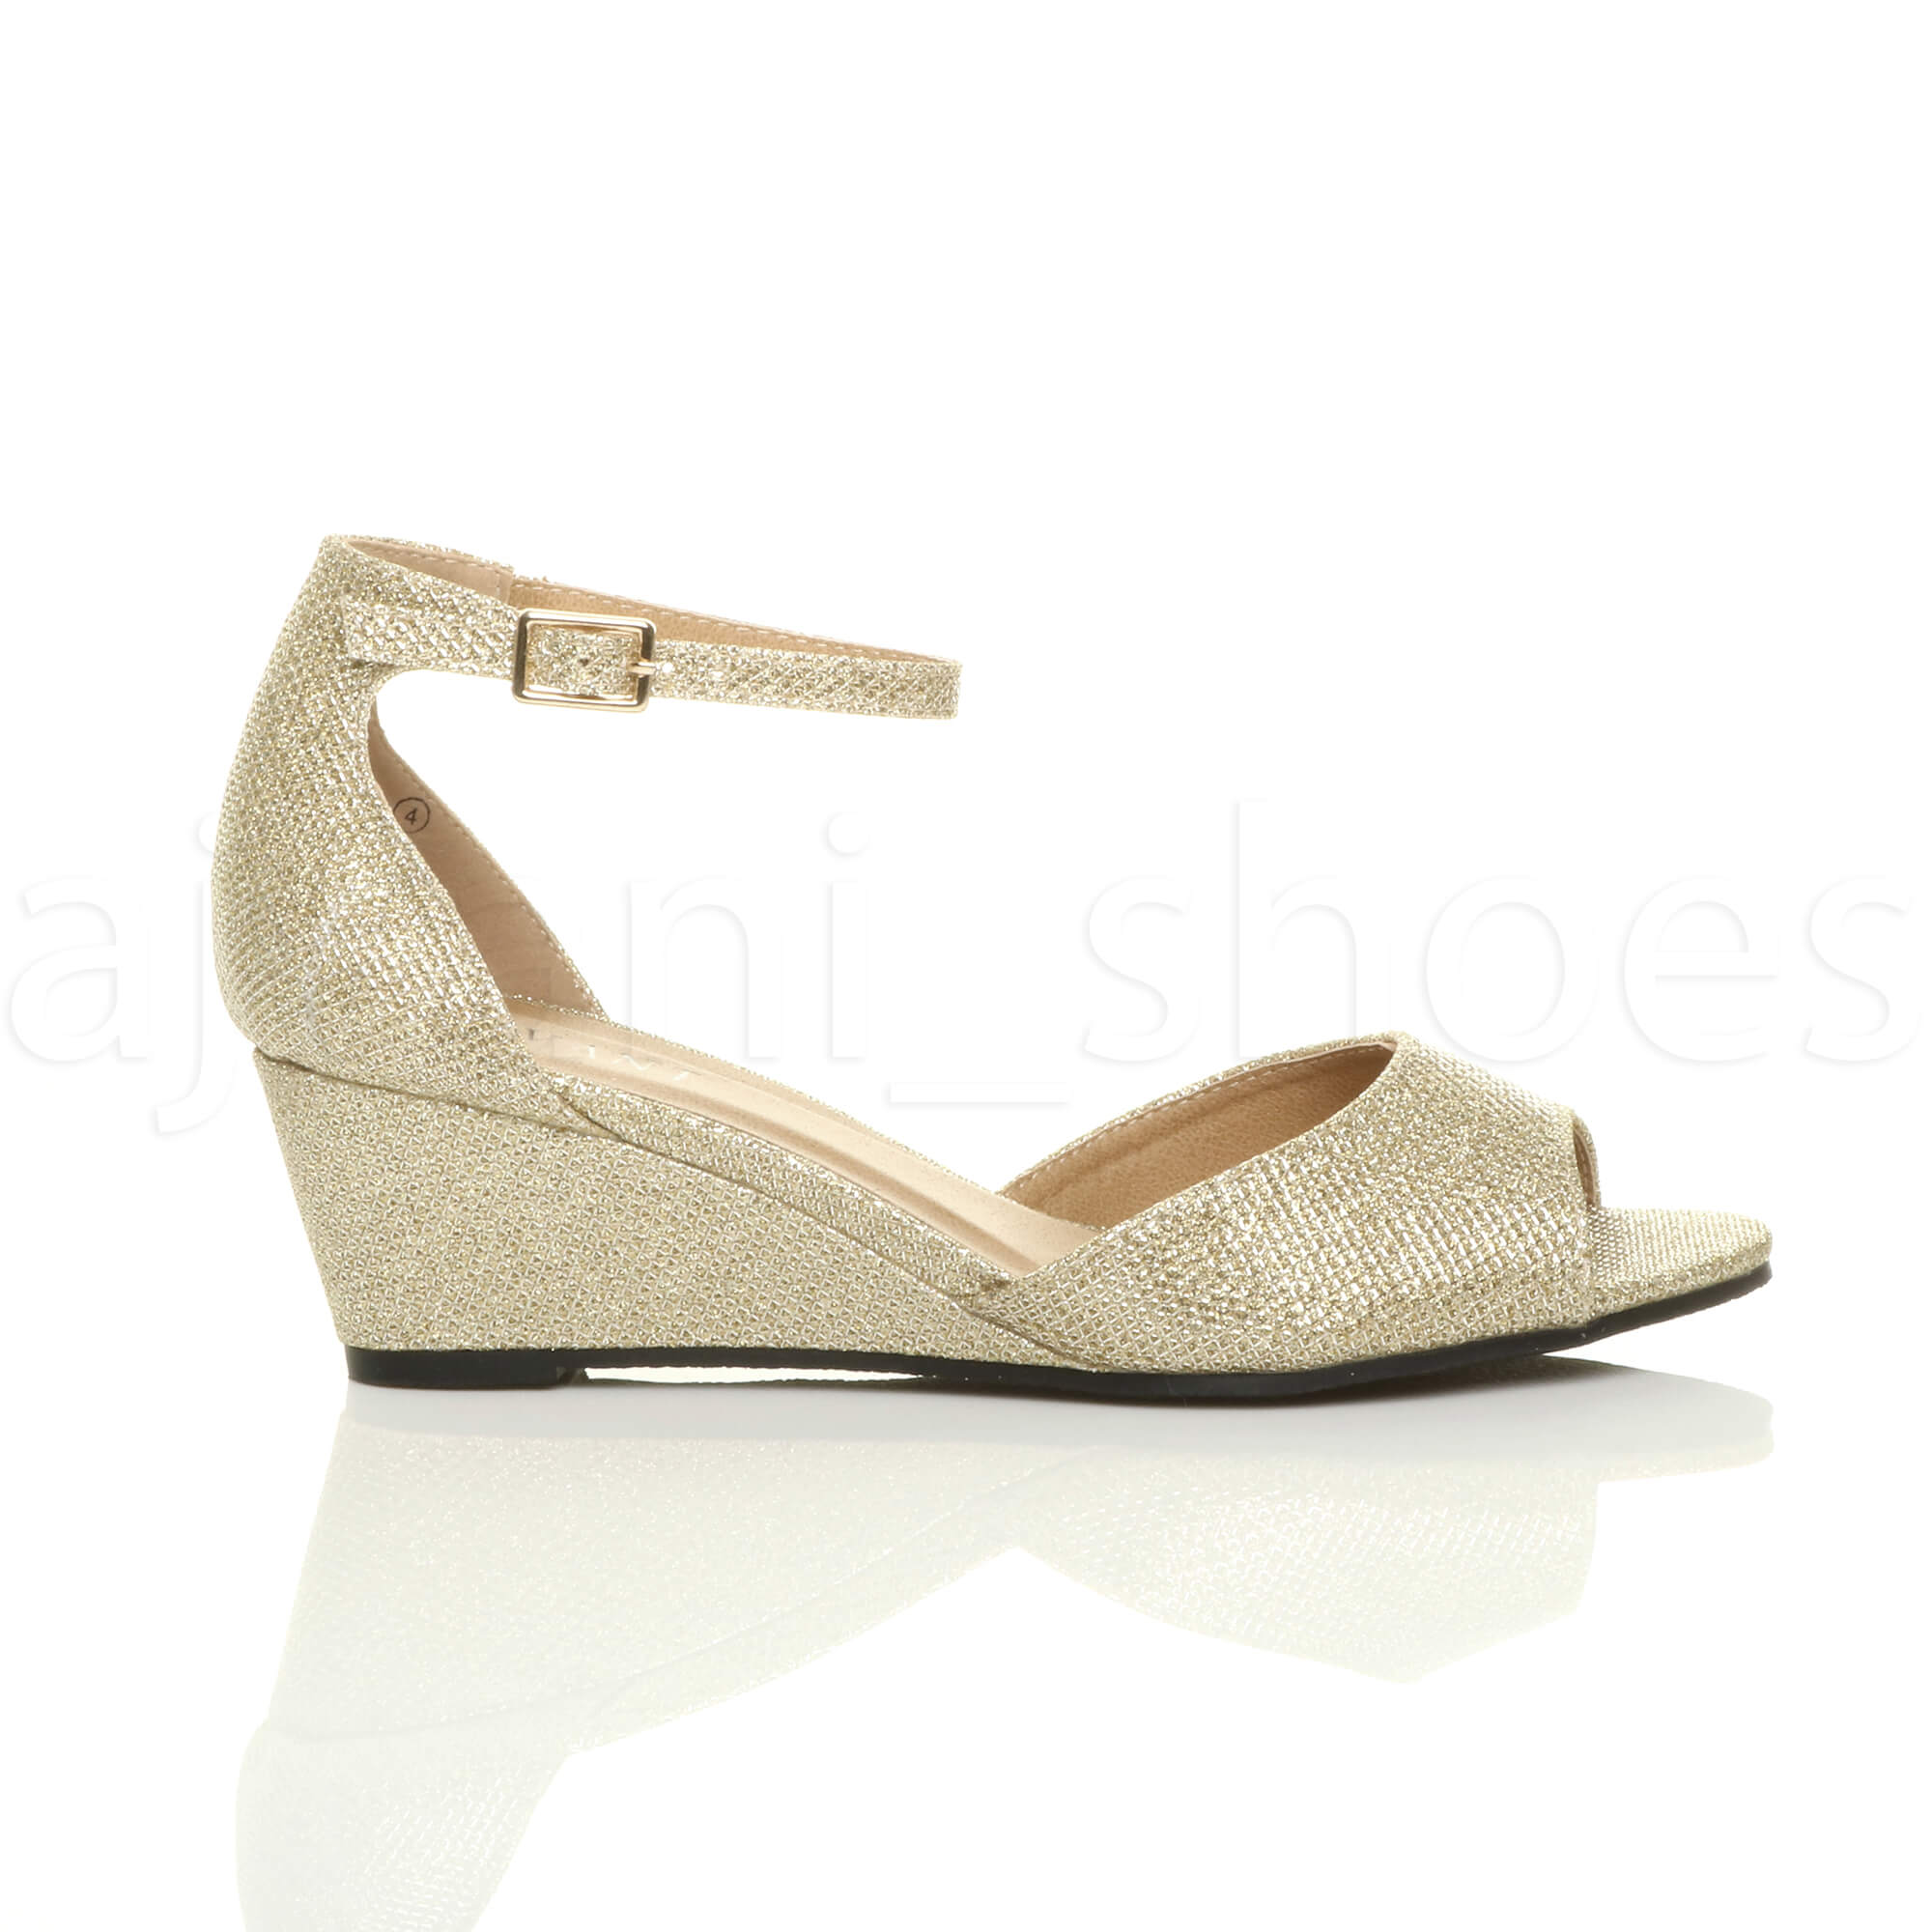 WOMENS-LADIES-LOW-MID-WEDGE-HEEL-ANKLE-STRAP-SMART-CASUAL-EVENING-SANDALS-SIZE thumbnail 51